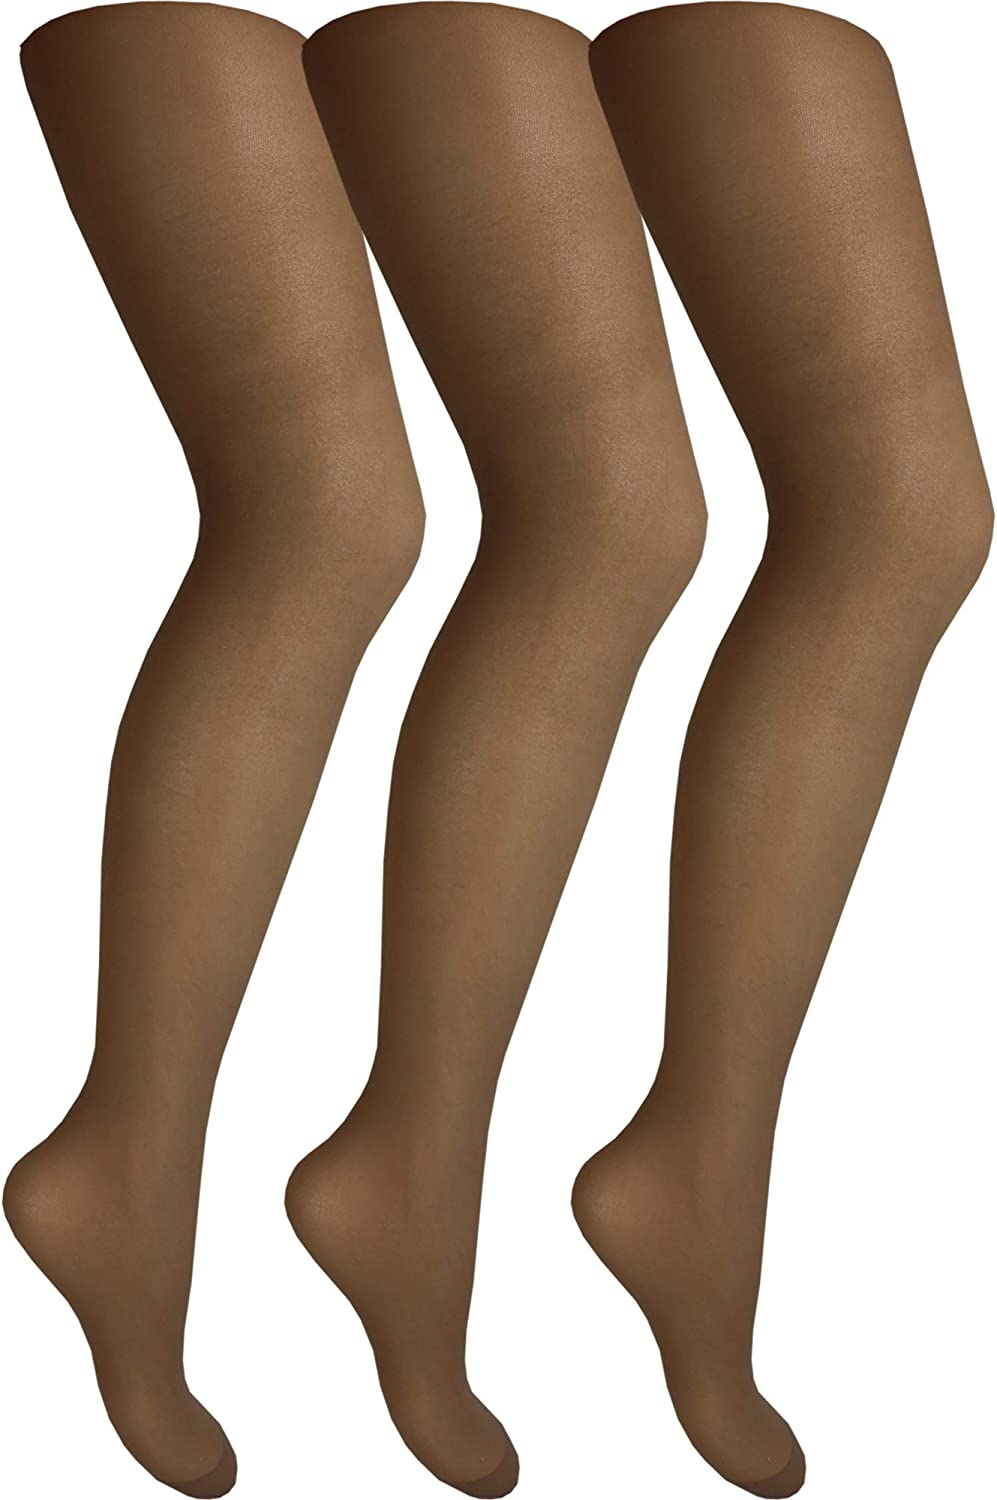 3 Pair Pack Cindy Womens Ladder Resist Tights with Panel Gusset